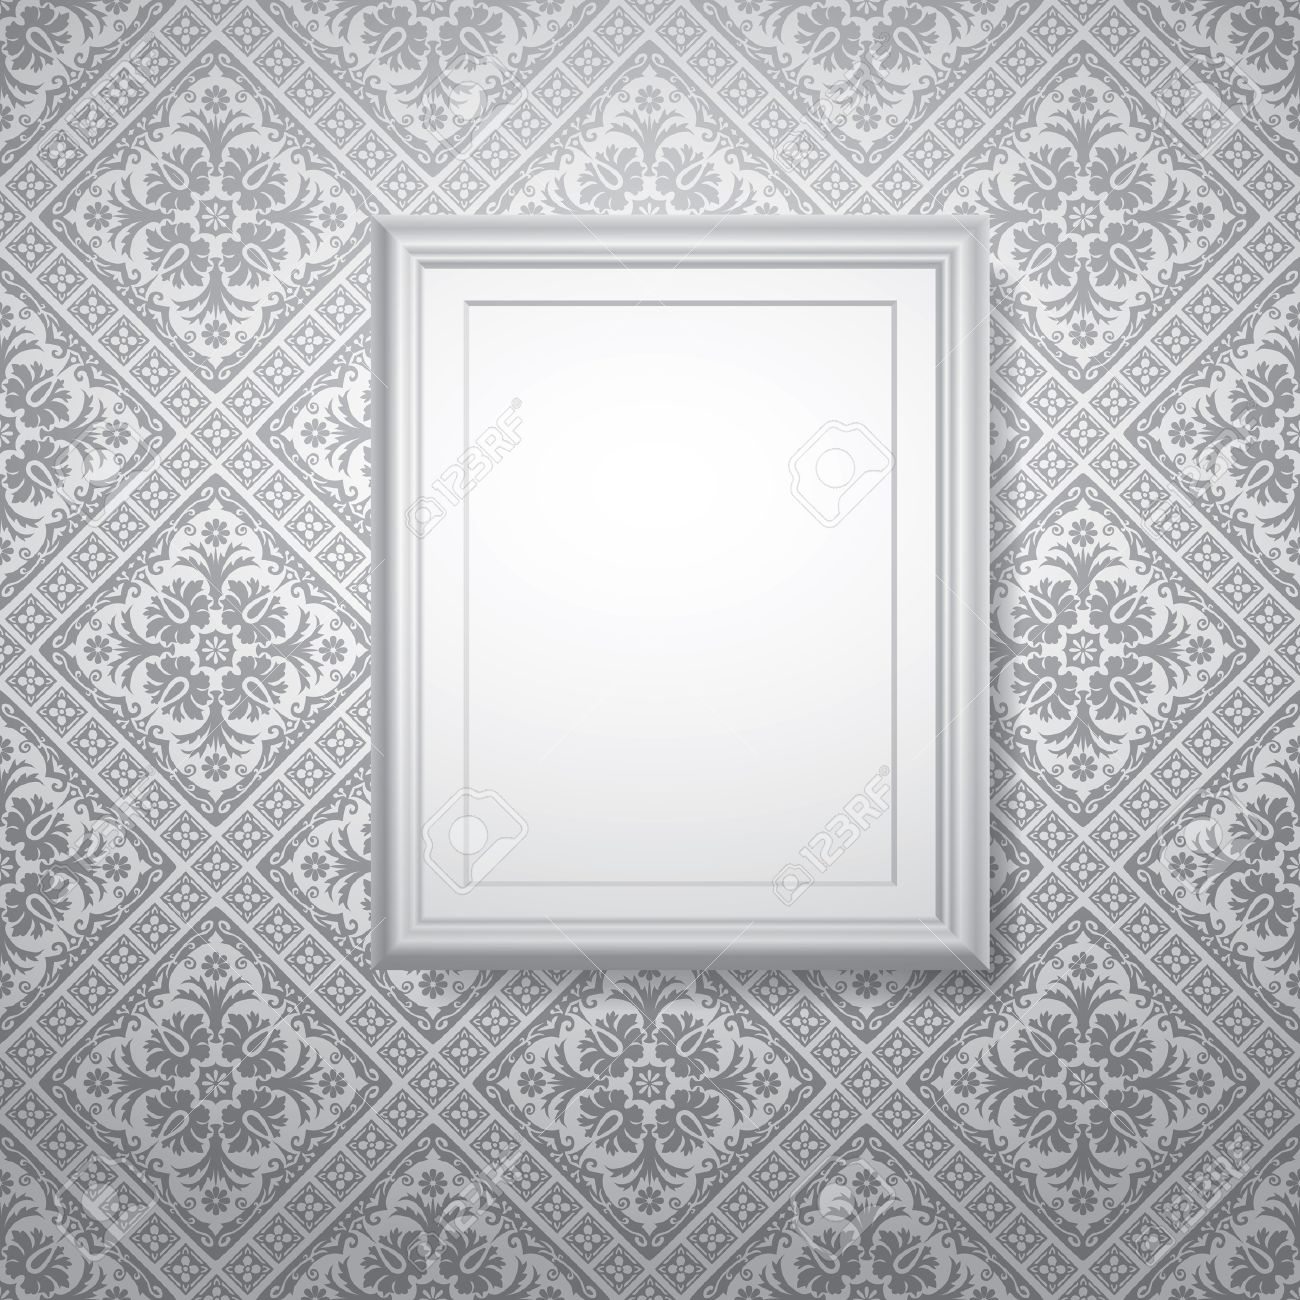 Vector White Frame On Gray Baroque Wallpaper Royalty Free Cliparts ...